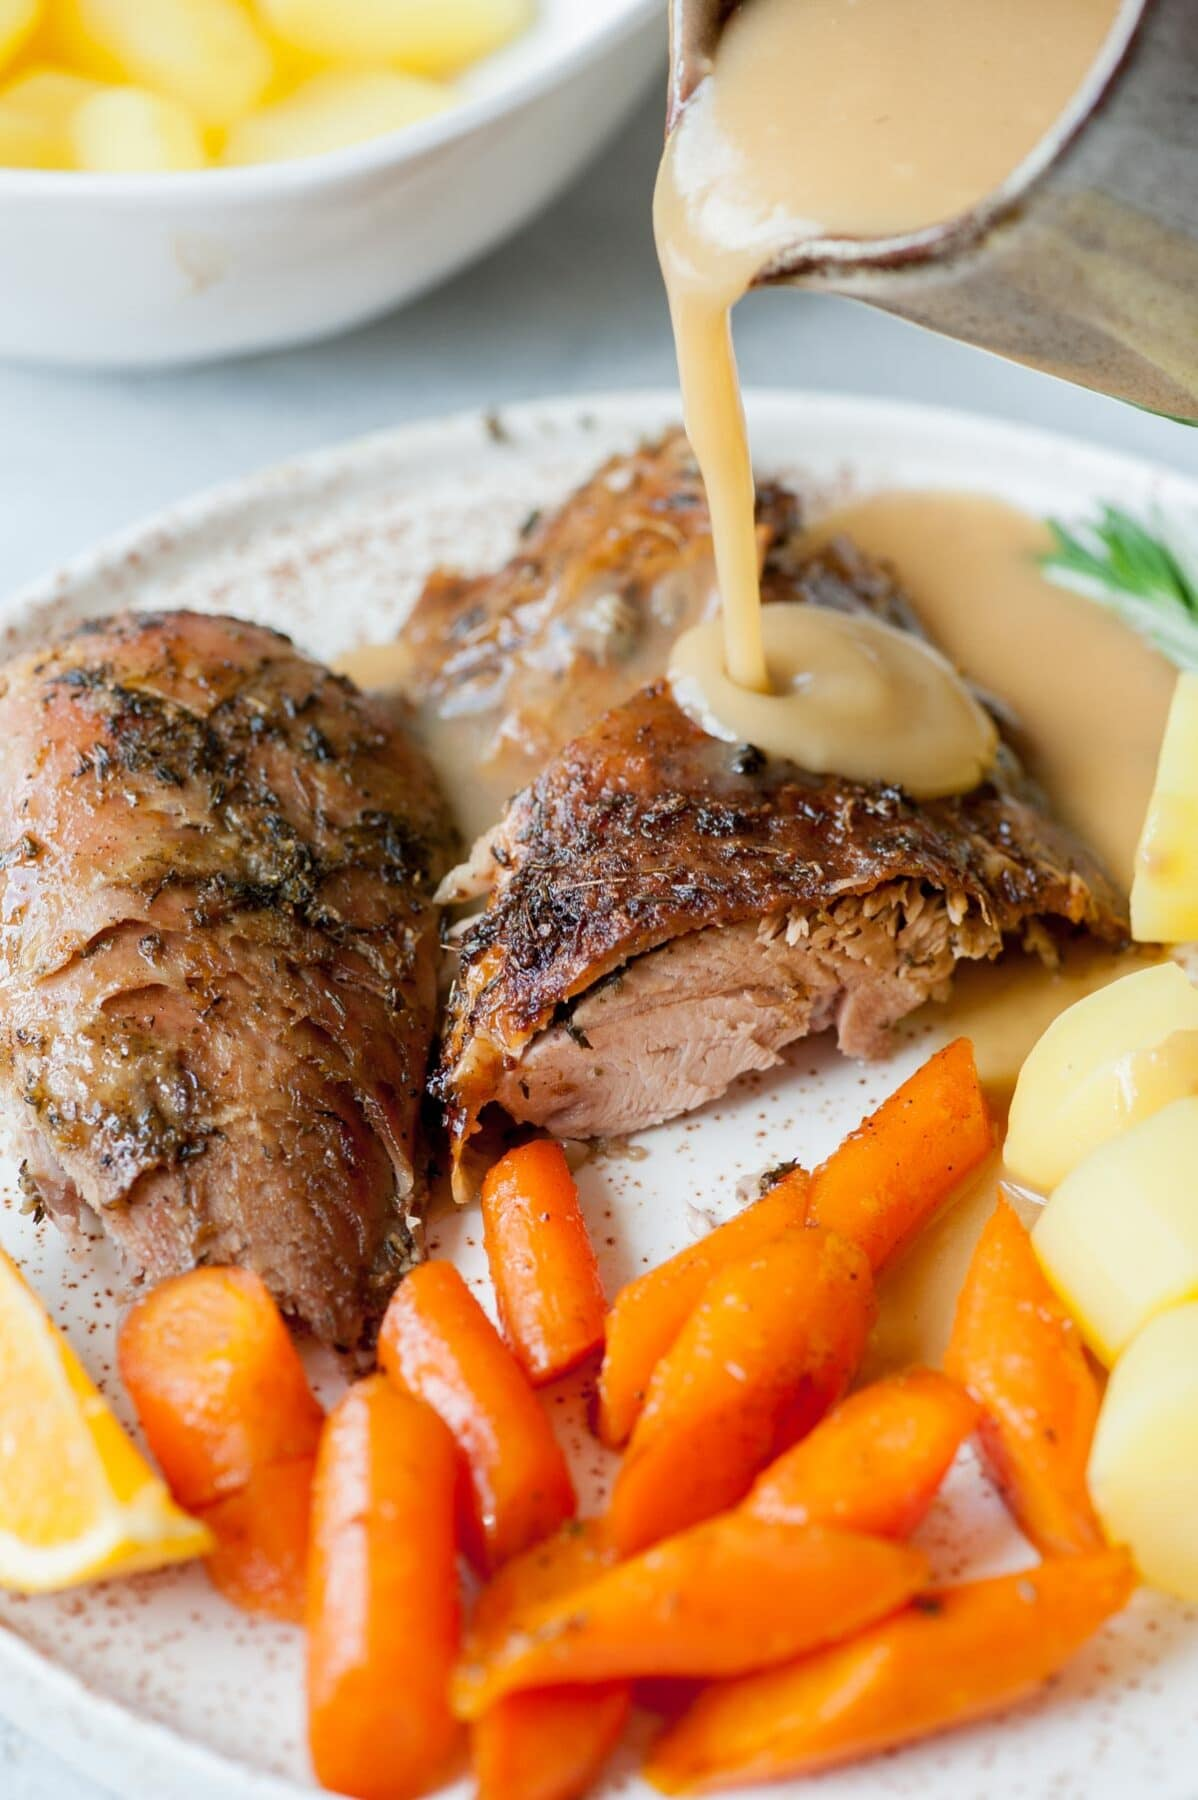 Gravy is being poured over baked turkey leg on a white plate with glazed carrots and potatoes.